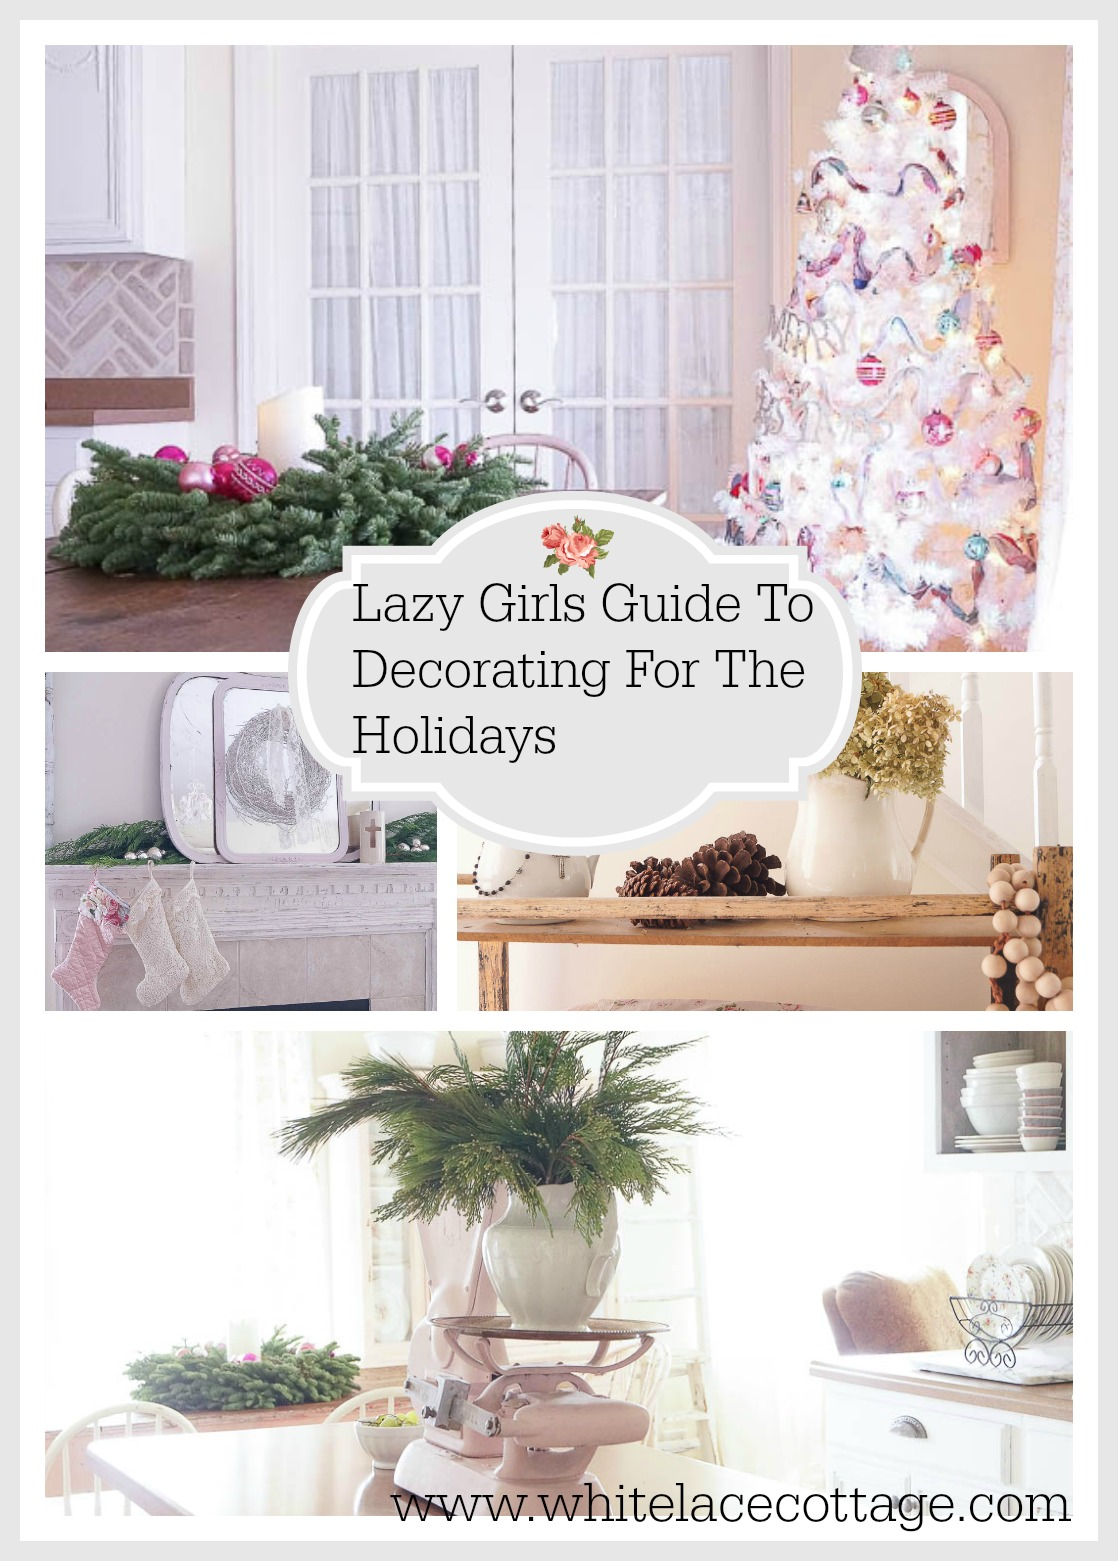 Lazy girls guide to decorating for the holidays